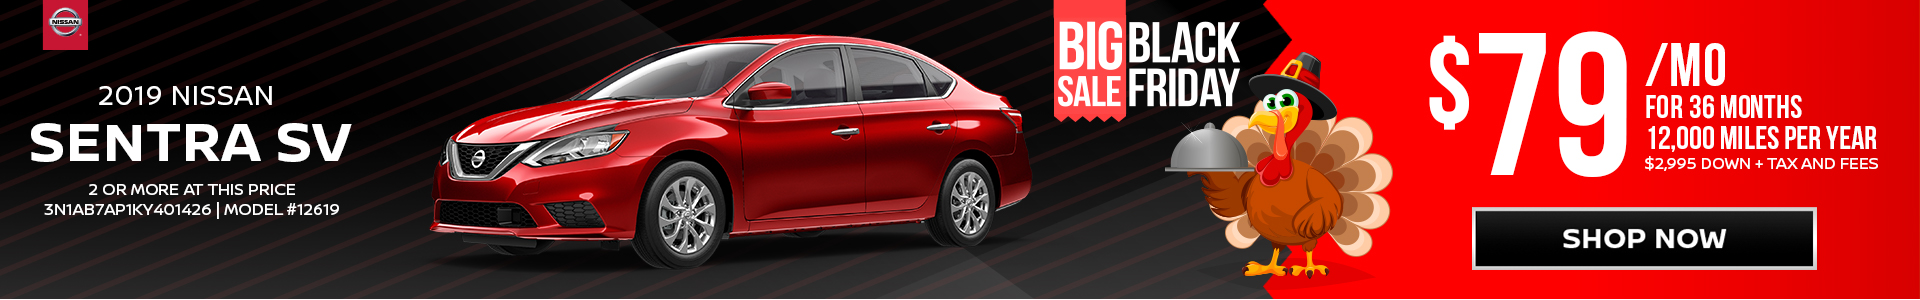 Nissan Sentra $79 Lease